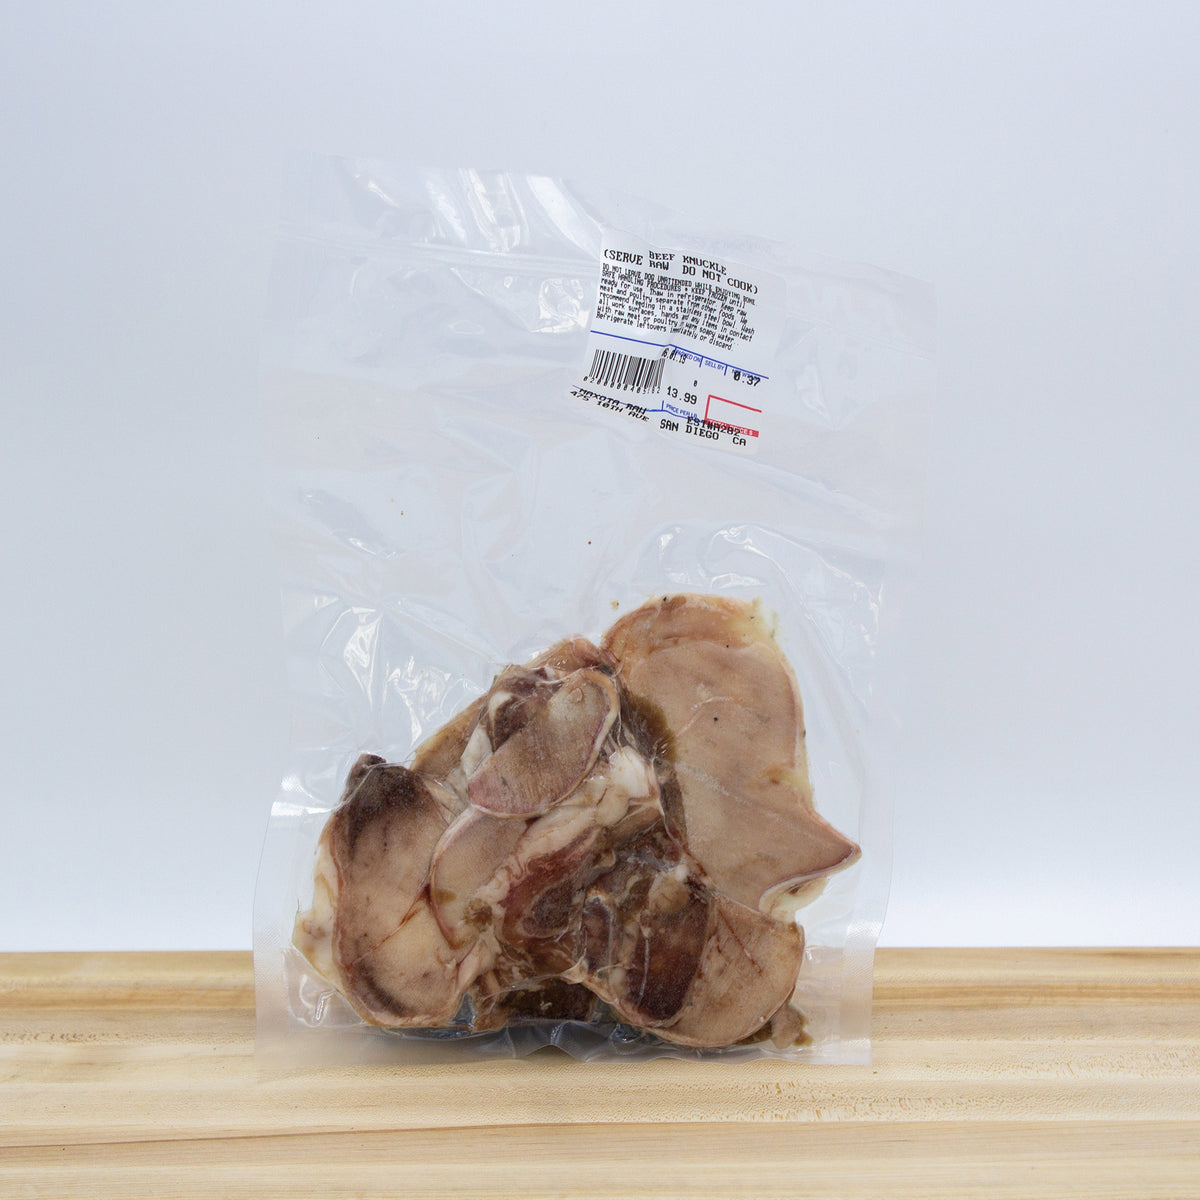 Maxota Raw: Frozen Knuckle Bone Slices Treats for Dogs Hand-Crafted in San Diego, California